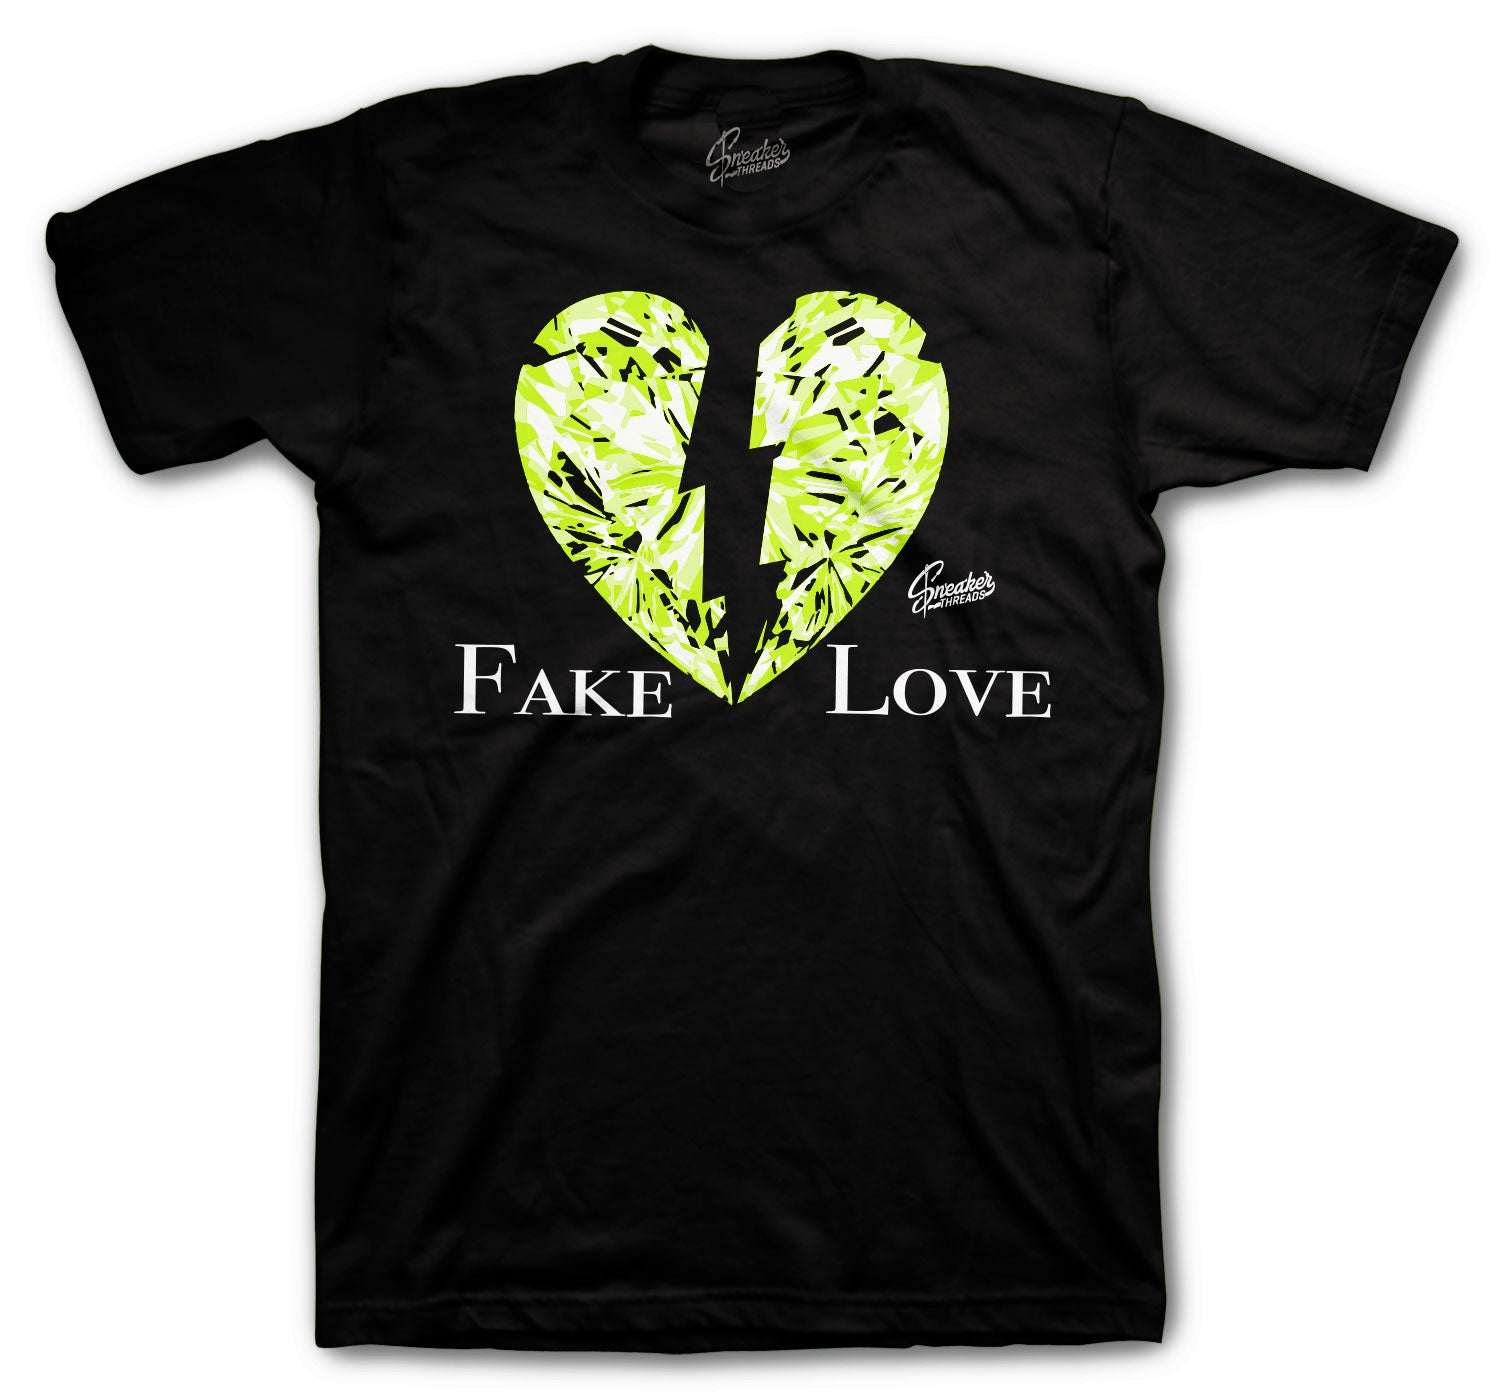 Foamposite Volt Fake Love Shirt